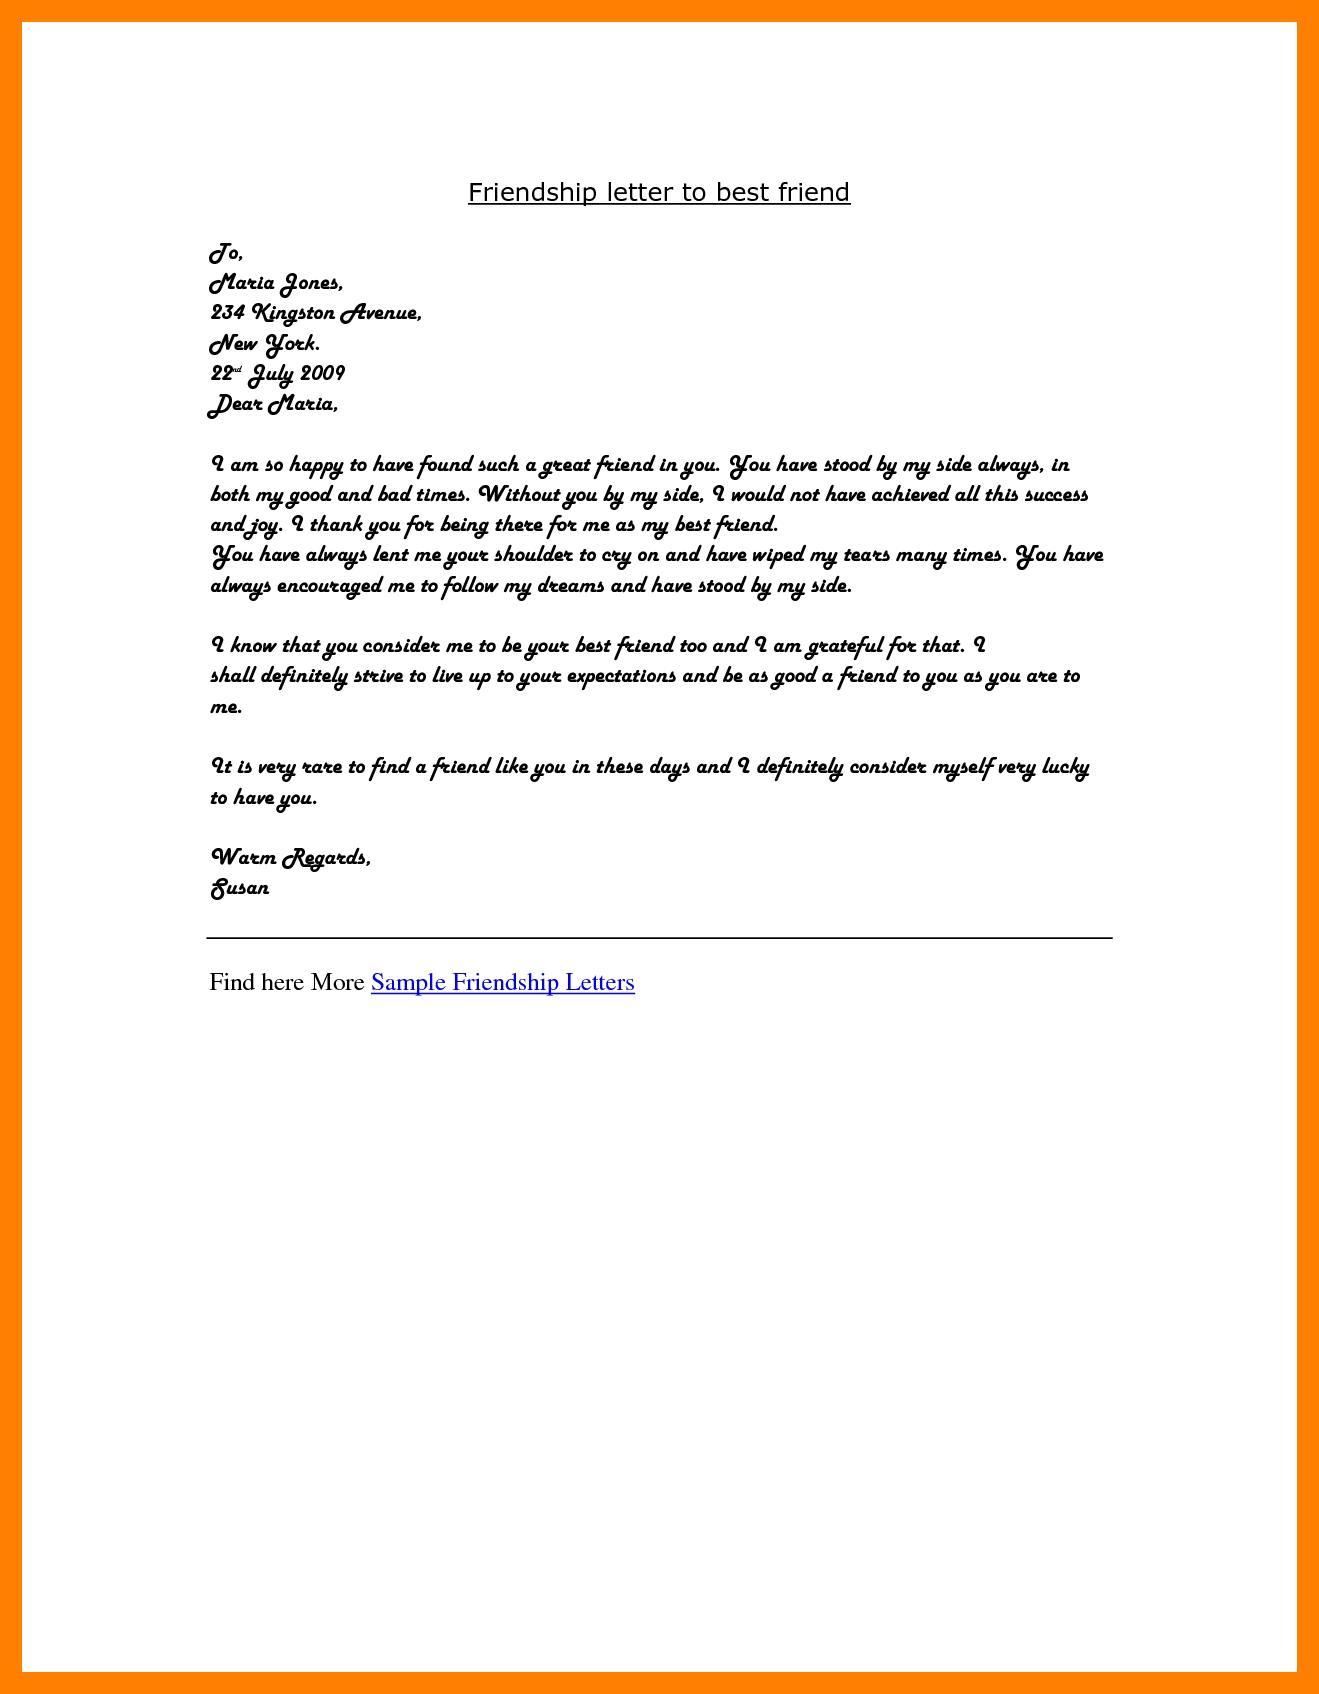 Performance Improvement Plan Letter Template - Awesome How to Write A Re Mendation Letter for A Friend Fo